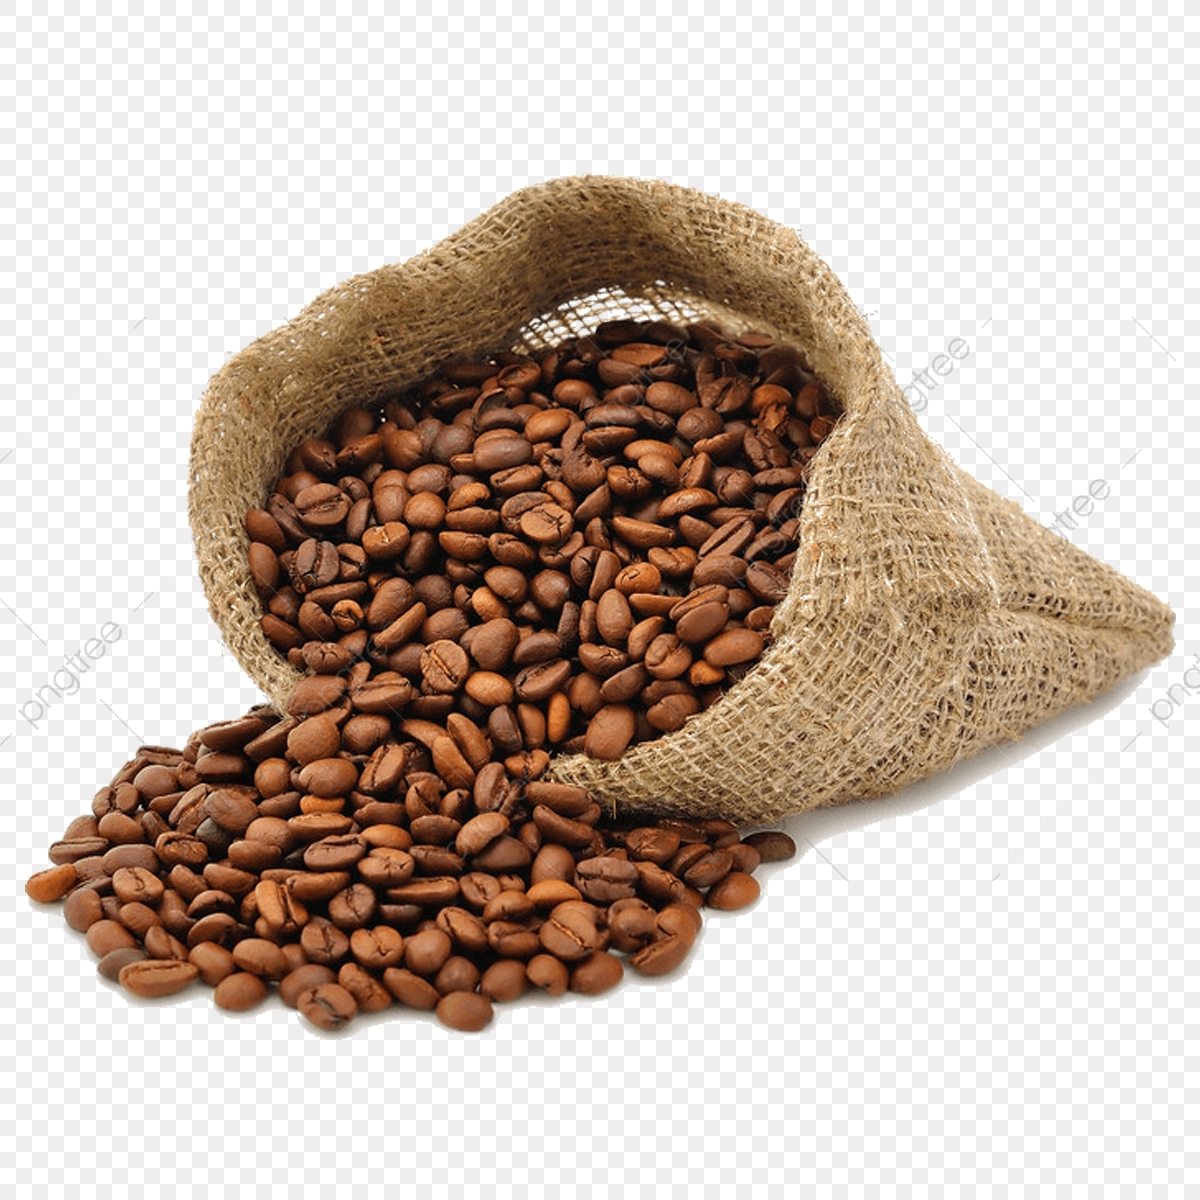 Coffee Beans, Coffee, Food PNG Transparent Clipart Image and PSD.